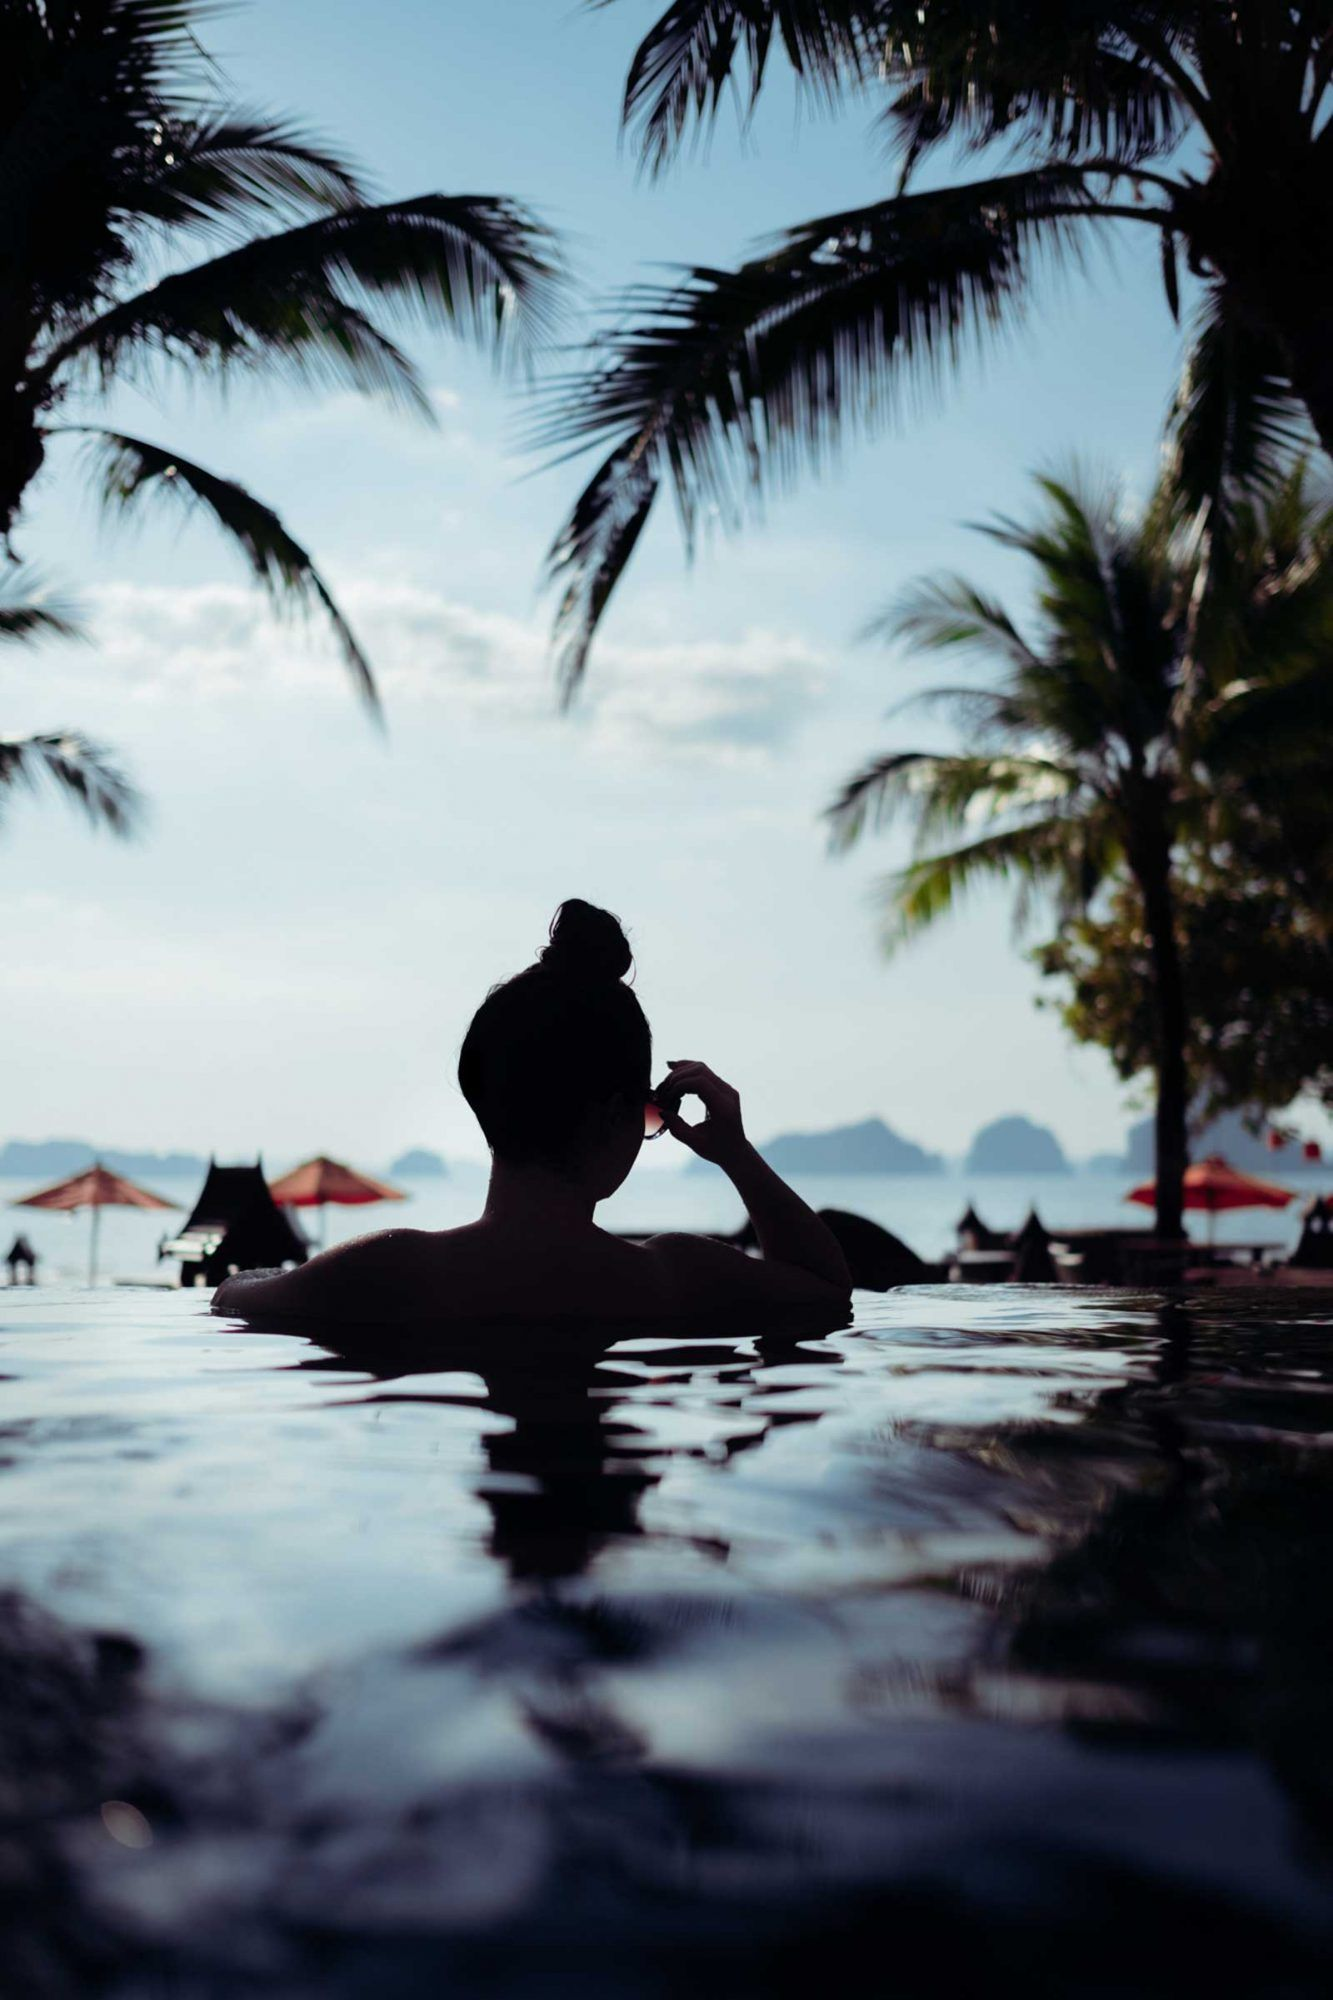 How To Take Better Photos On Vacation According To A T L Photo Contest Winner Travel Photography Tips Vacation Photos Travel Photography